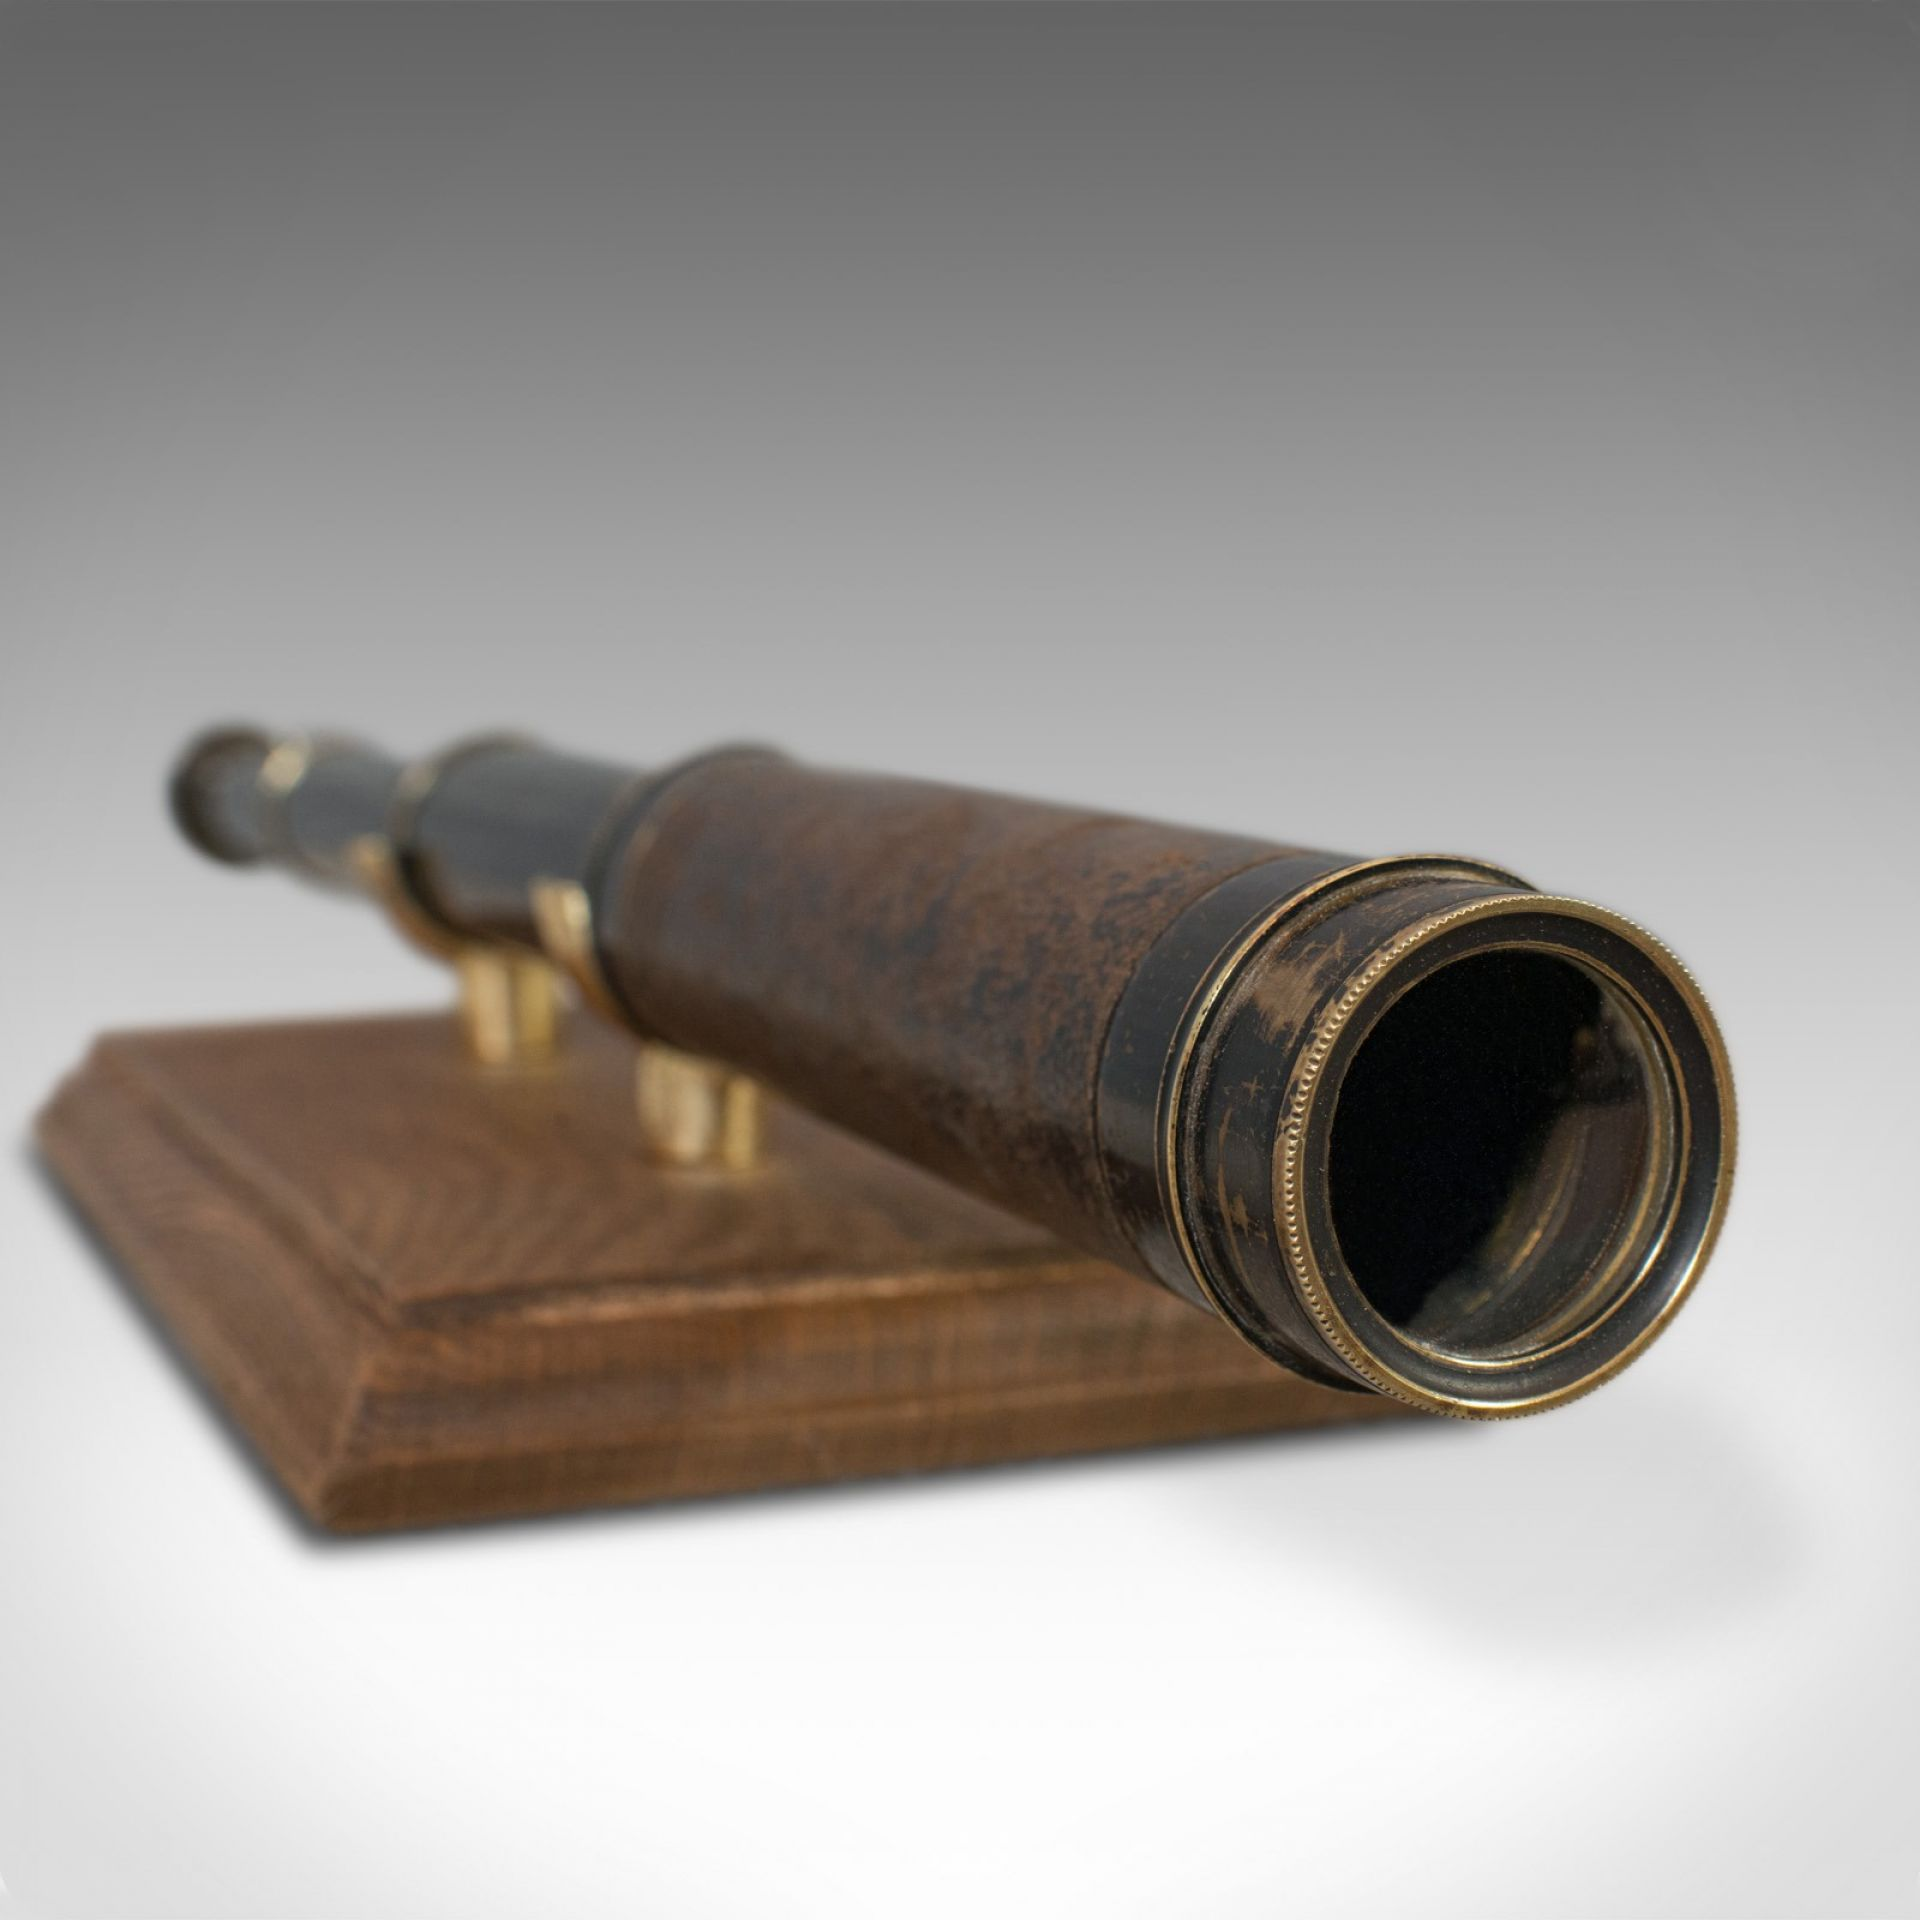 Antique Pocket Telescope, English, Brass, Leather, 3 Draw, Refractor, Victorian